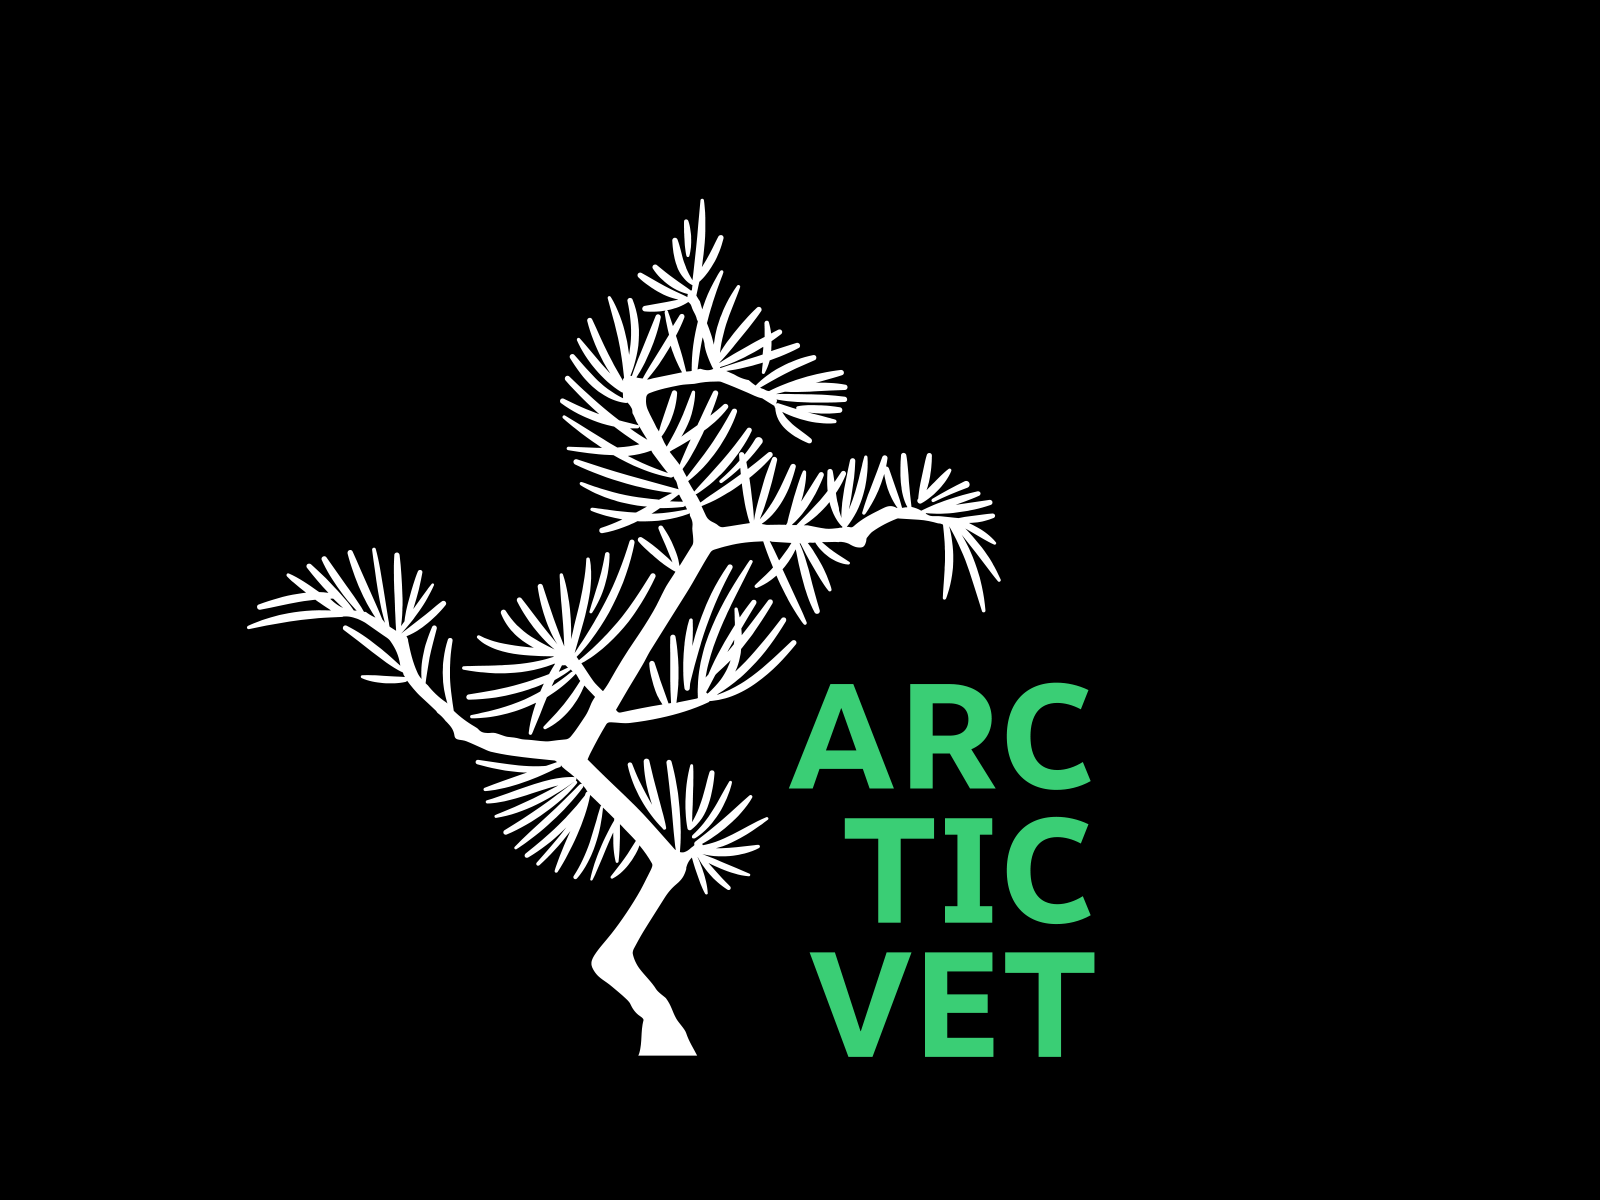 arcticvet-trademark-hooves-2019-07-25